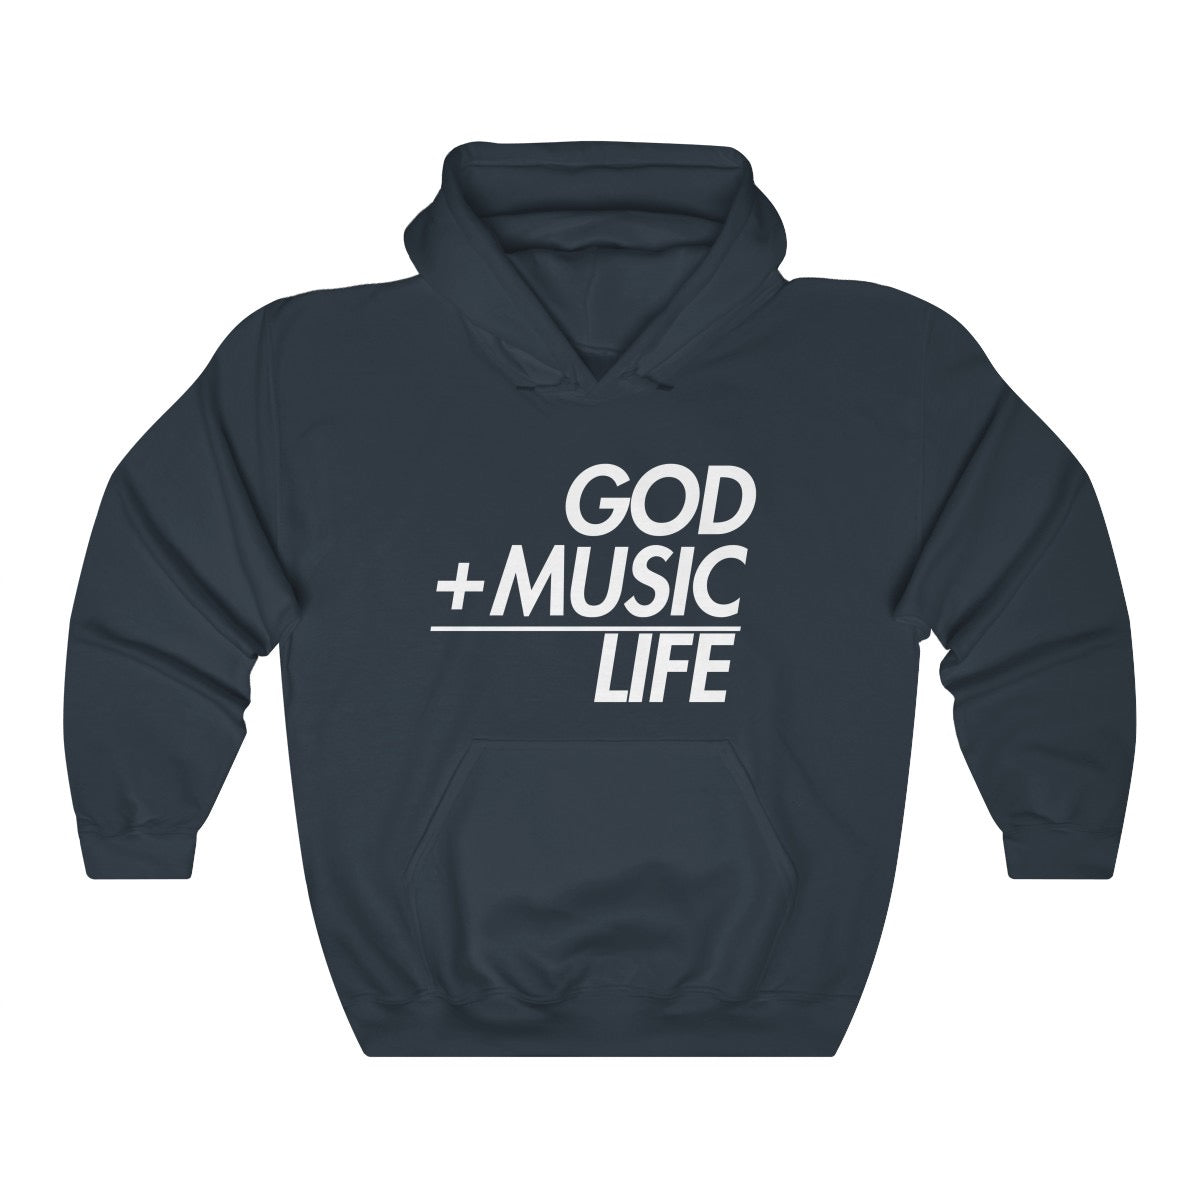 Large Print GML Hoodie - God Life Clothing